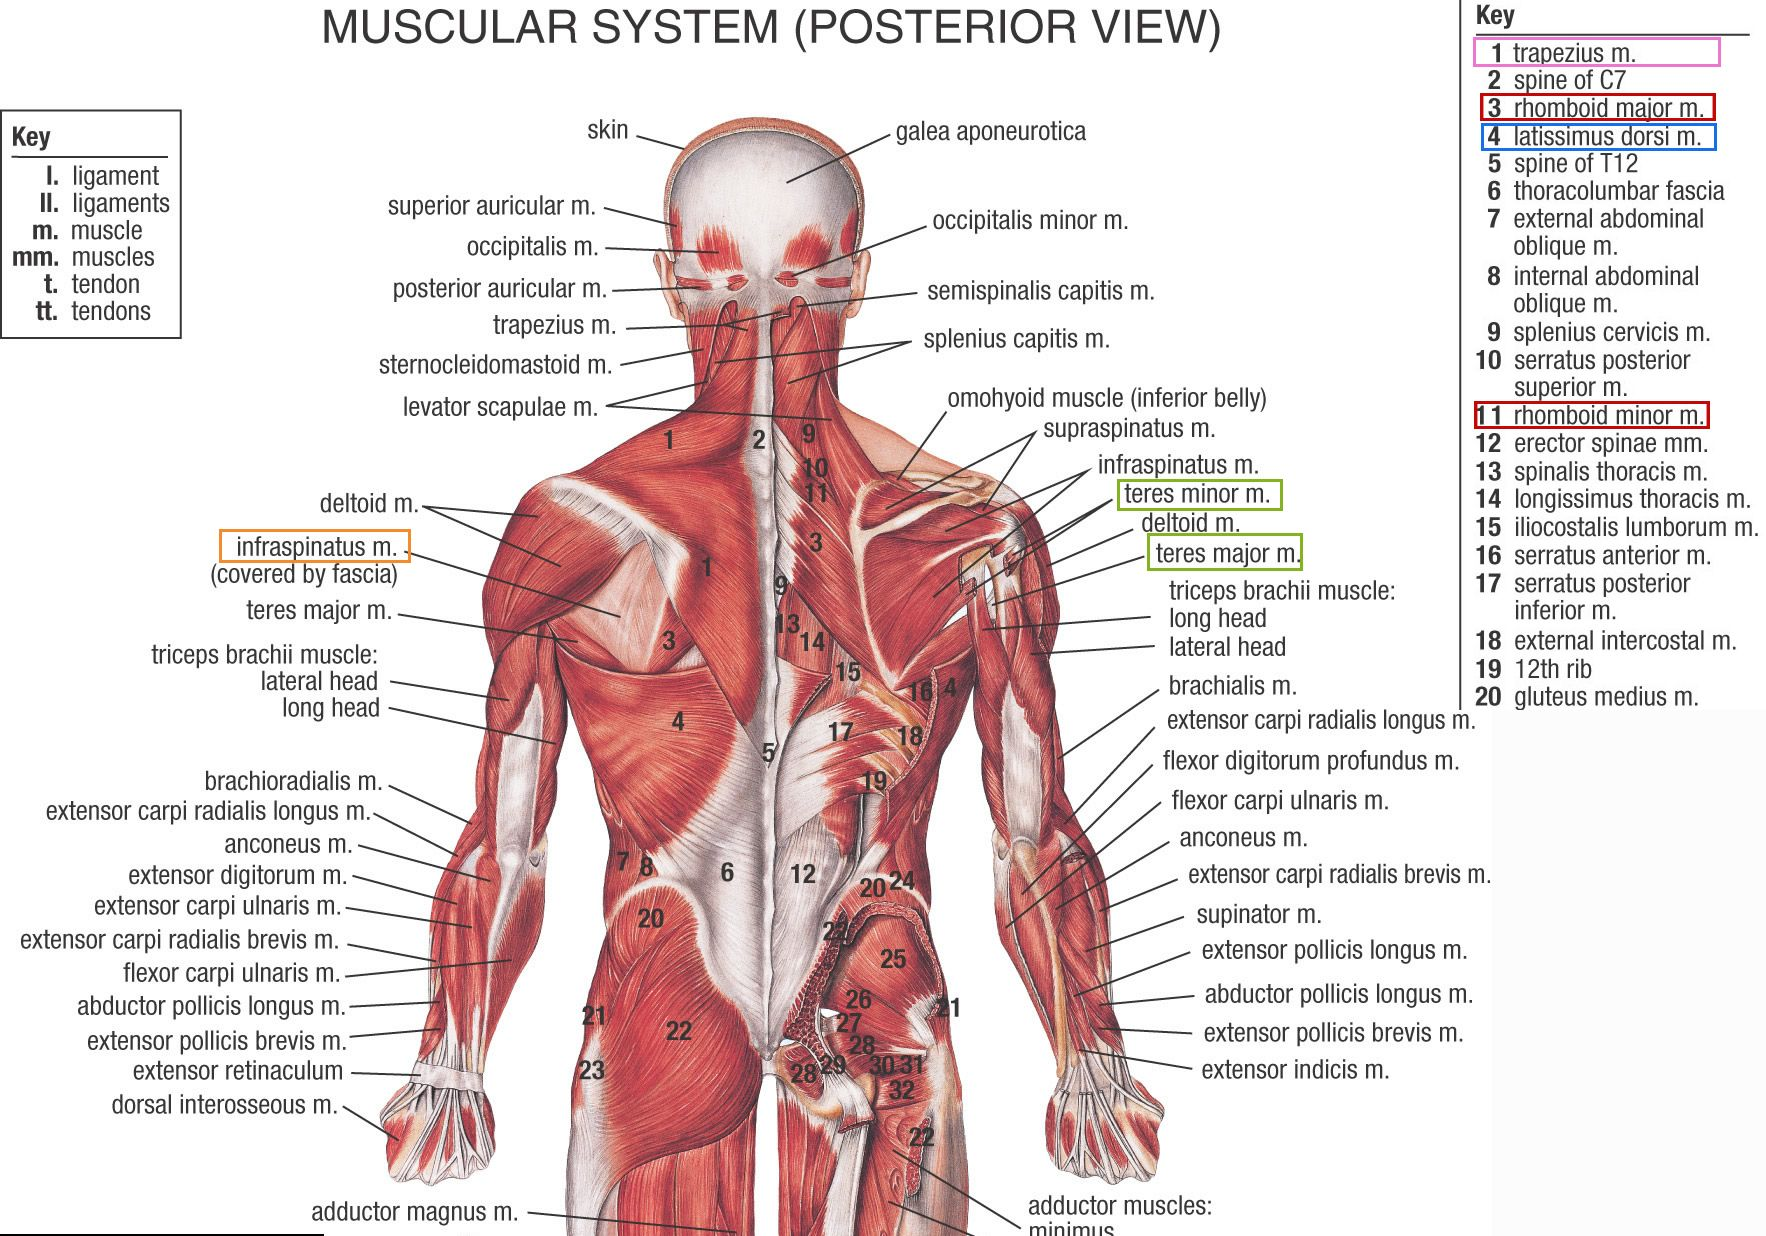 Muscles, ligaments and tendons of the human back | Nerd | Pinterest ...